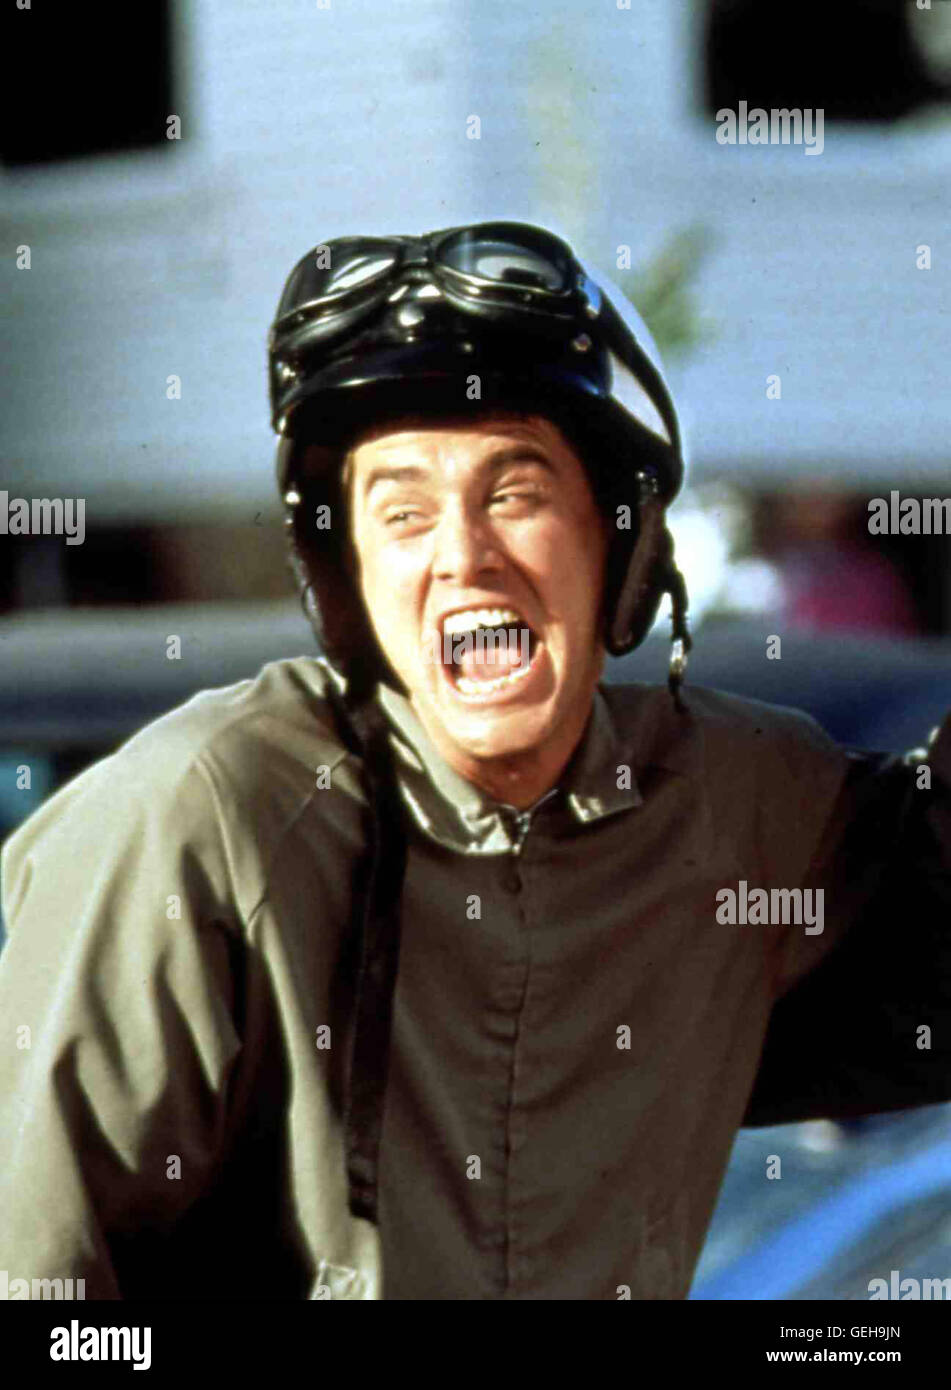 dumb and dumber stock photos amp dumb and dumber stock